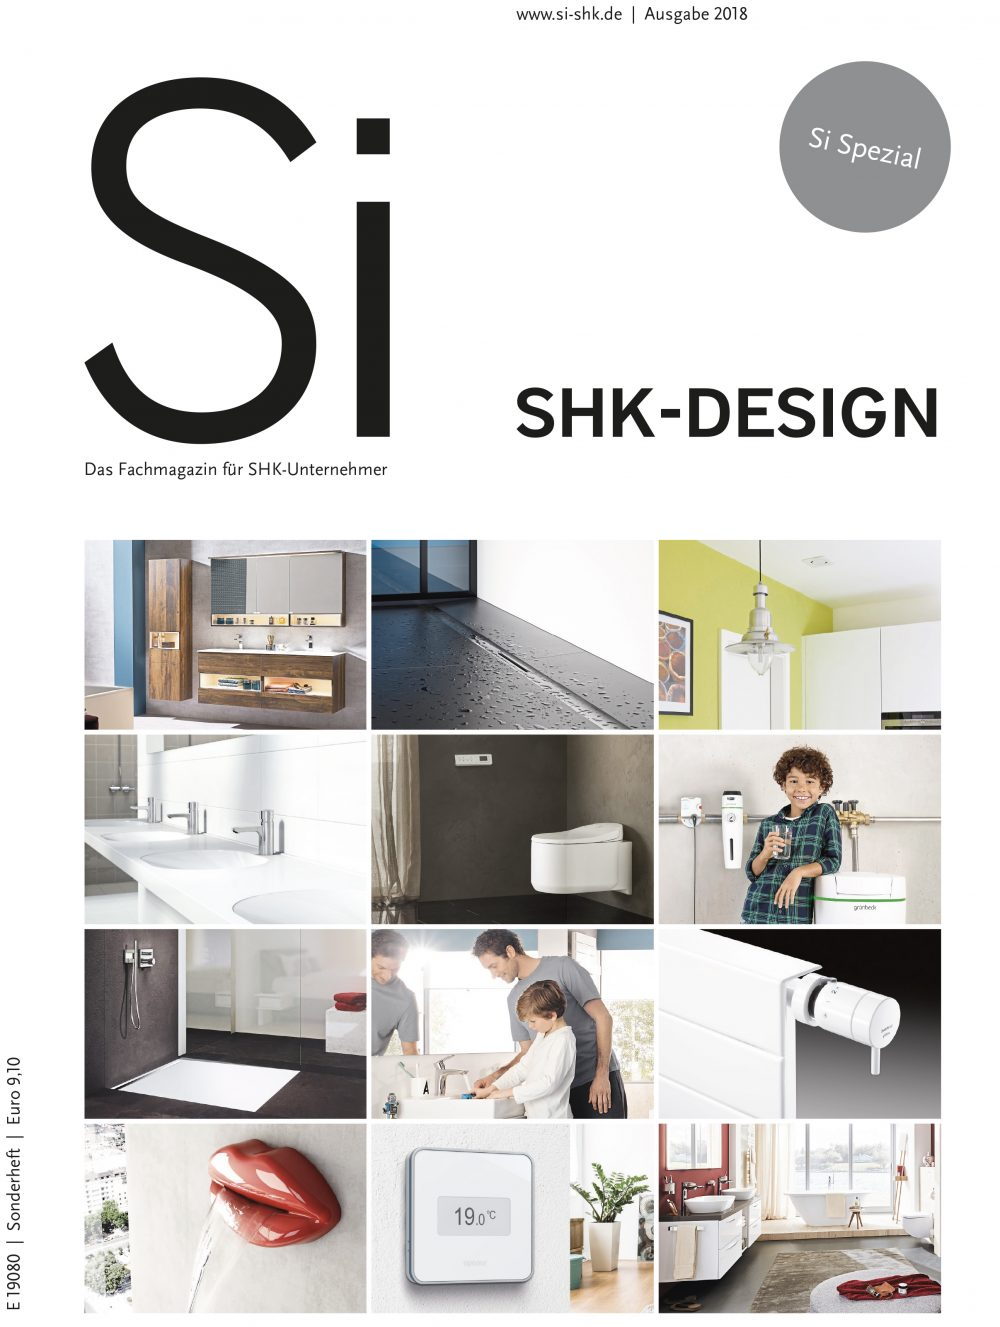 Sonderheft Si SHK-Design 2018